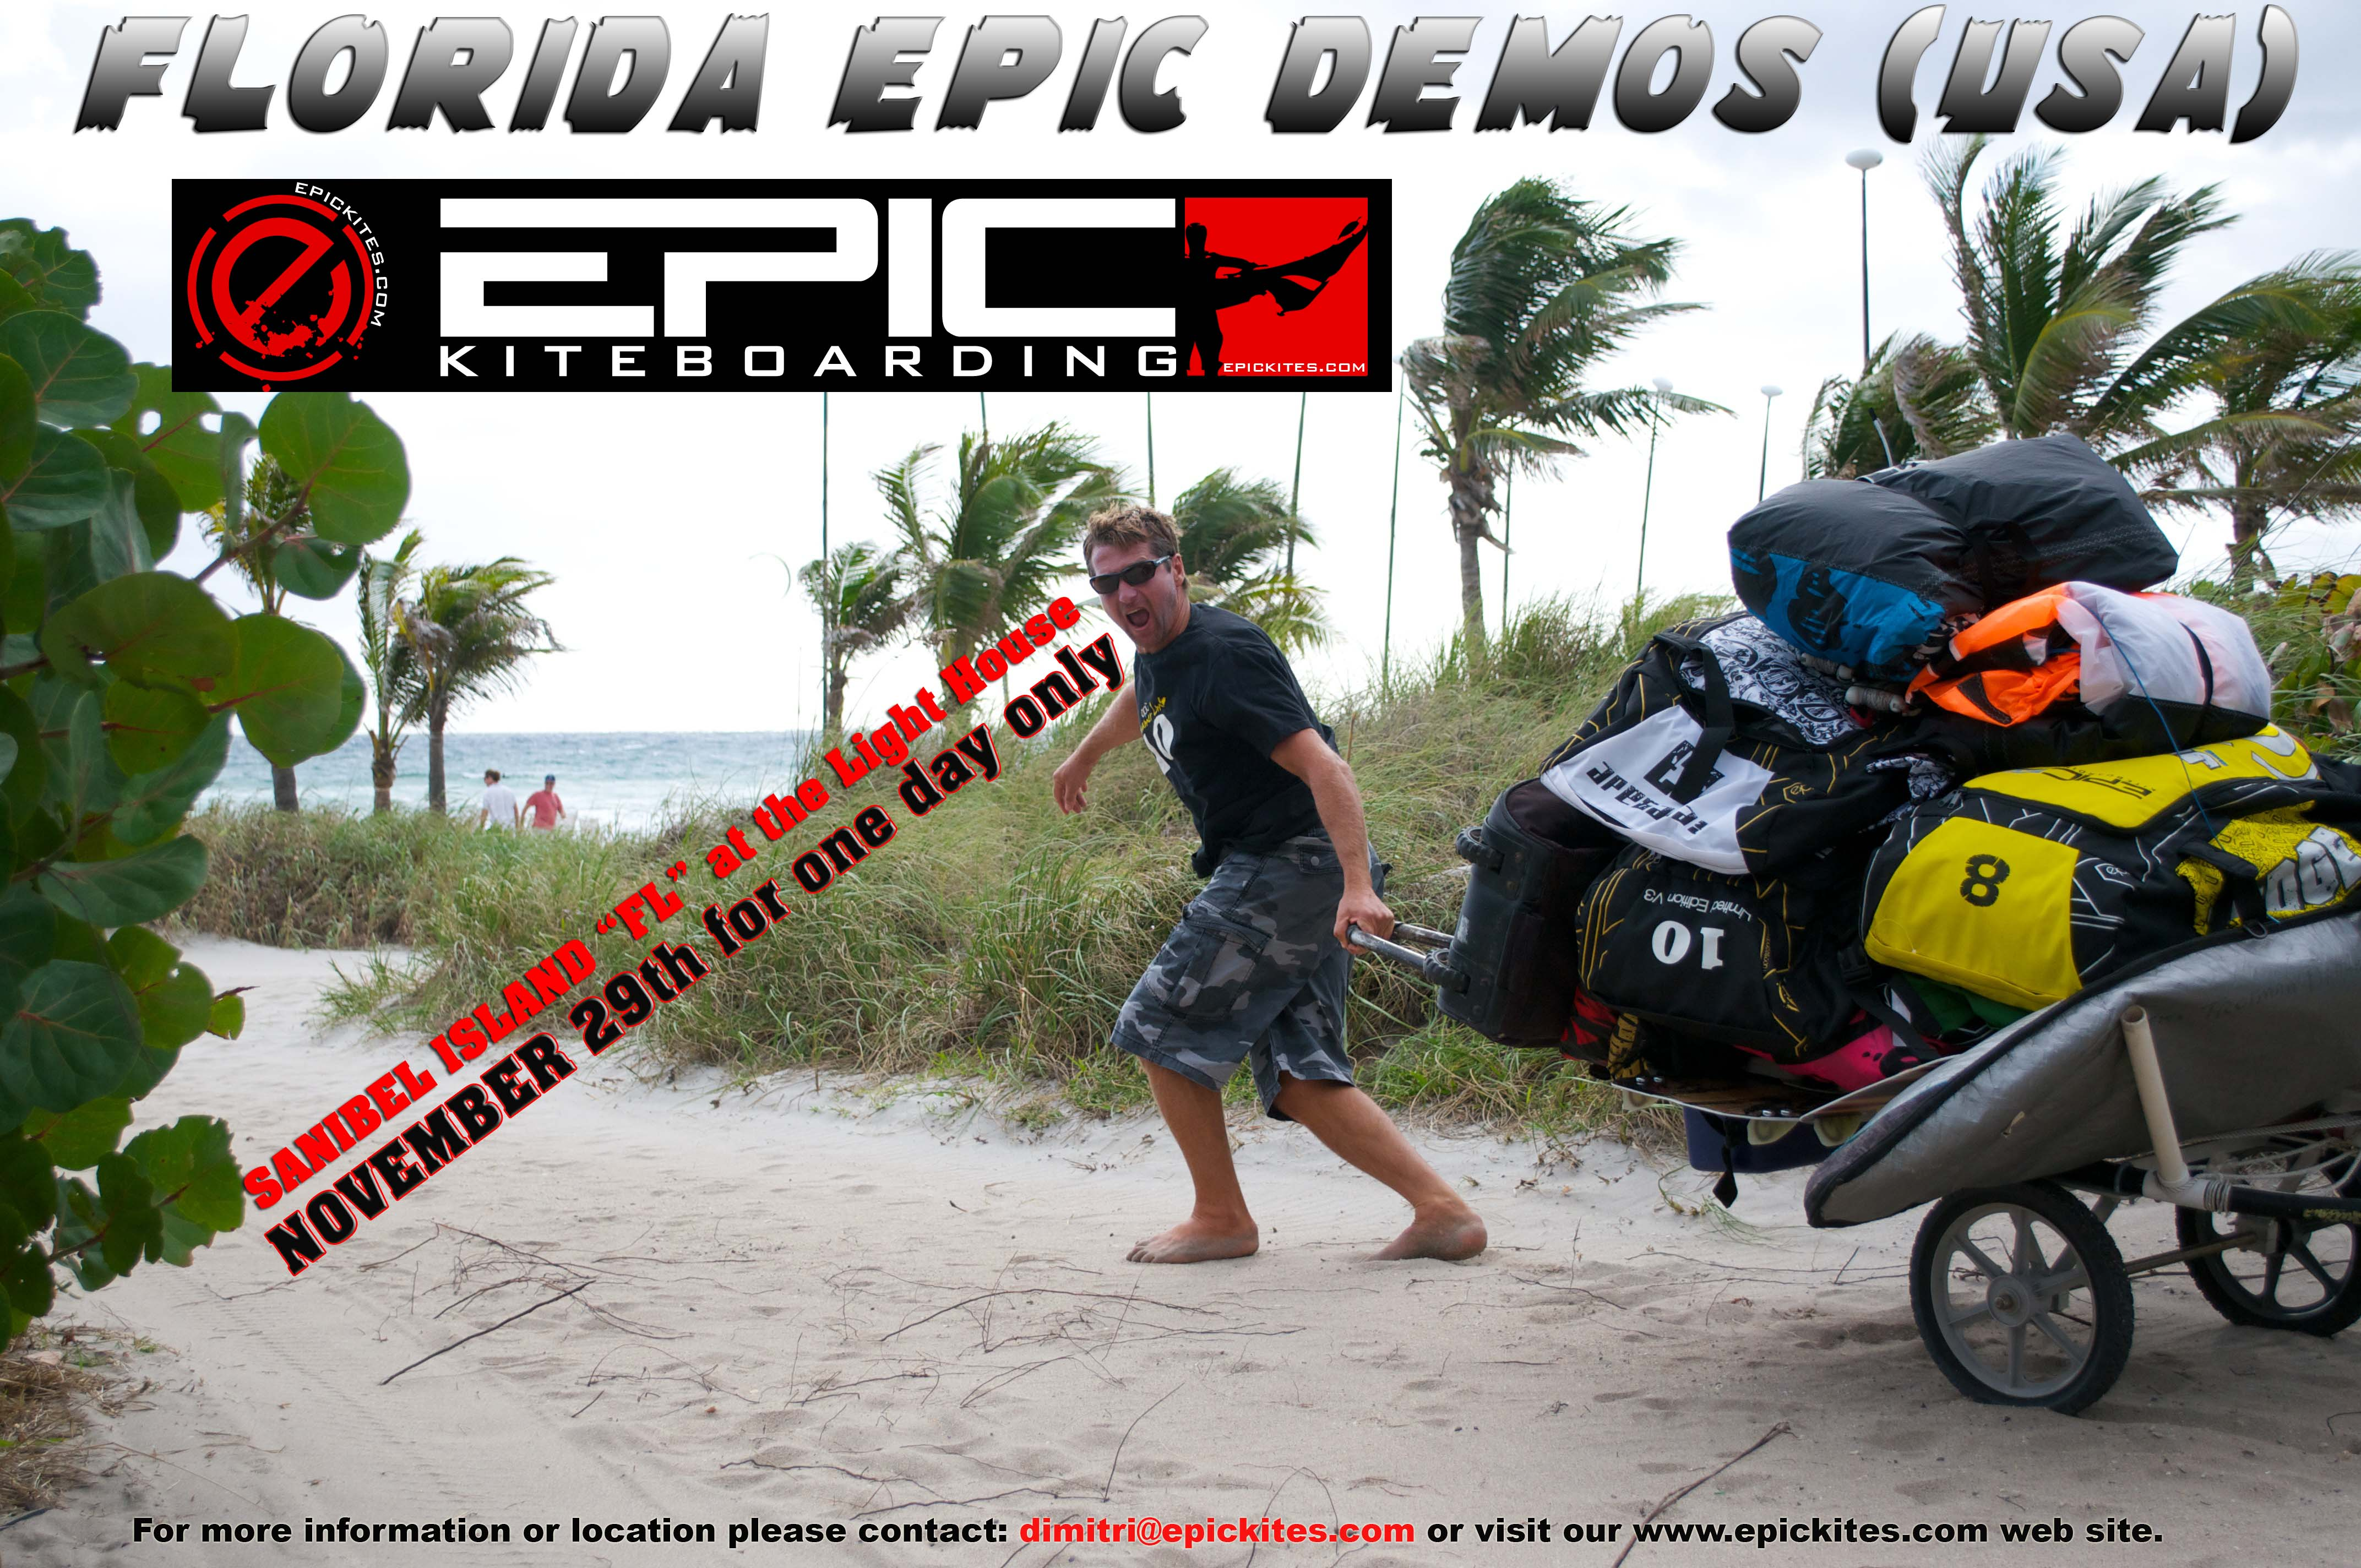 FLORIDA EPIC DEMOS SANIBEL ISLAND.jpg